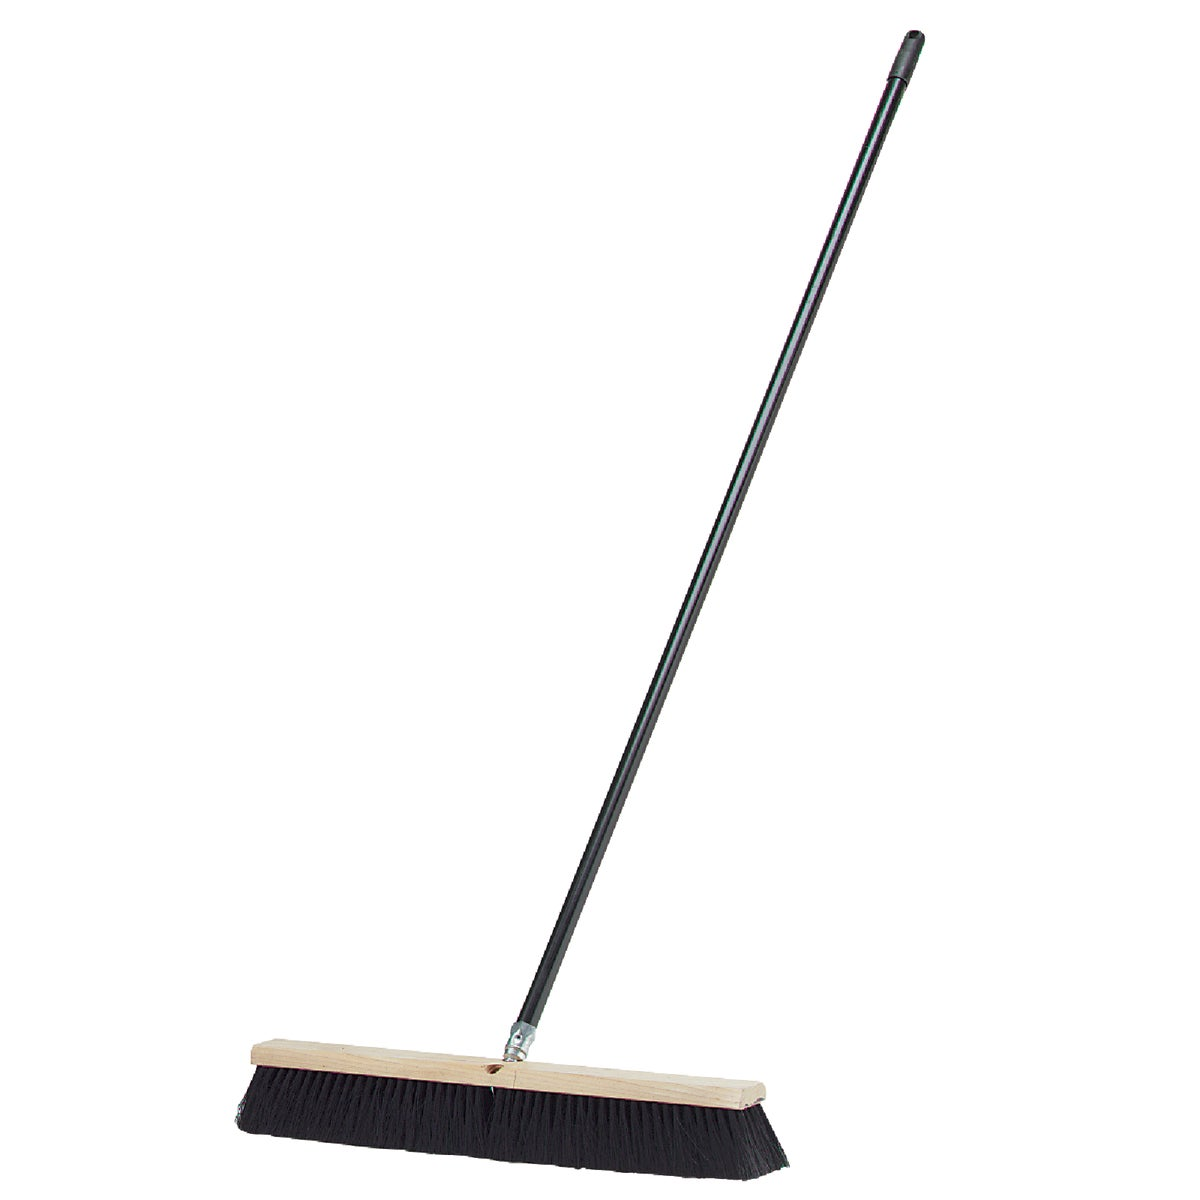 "24"" TAMPICO PUSH BROOM - 09985 by D Q B Ind"